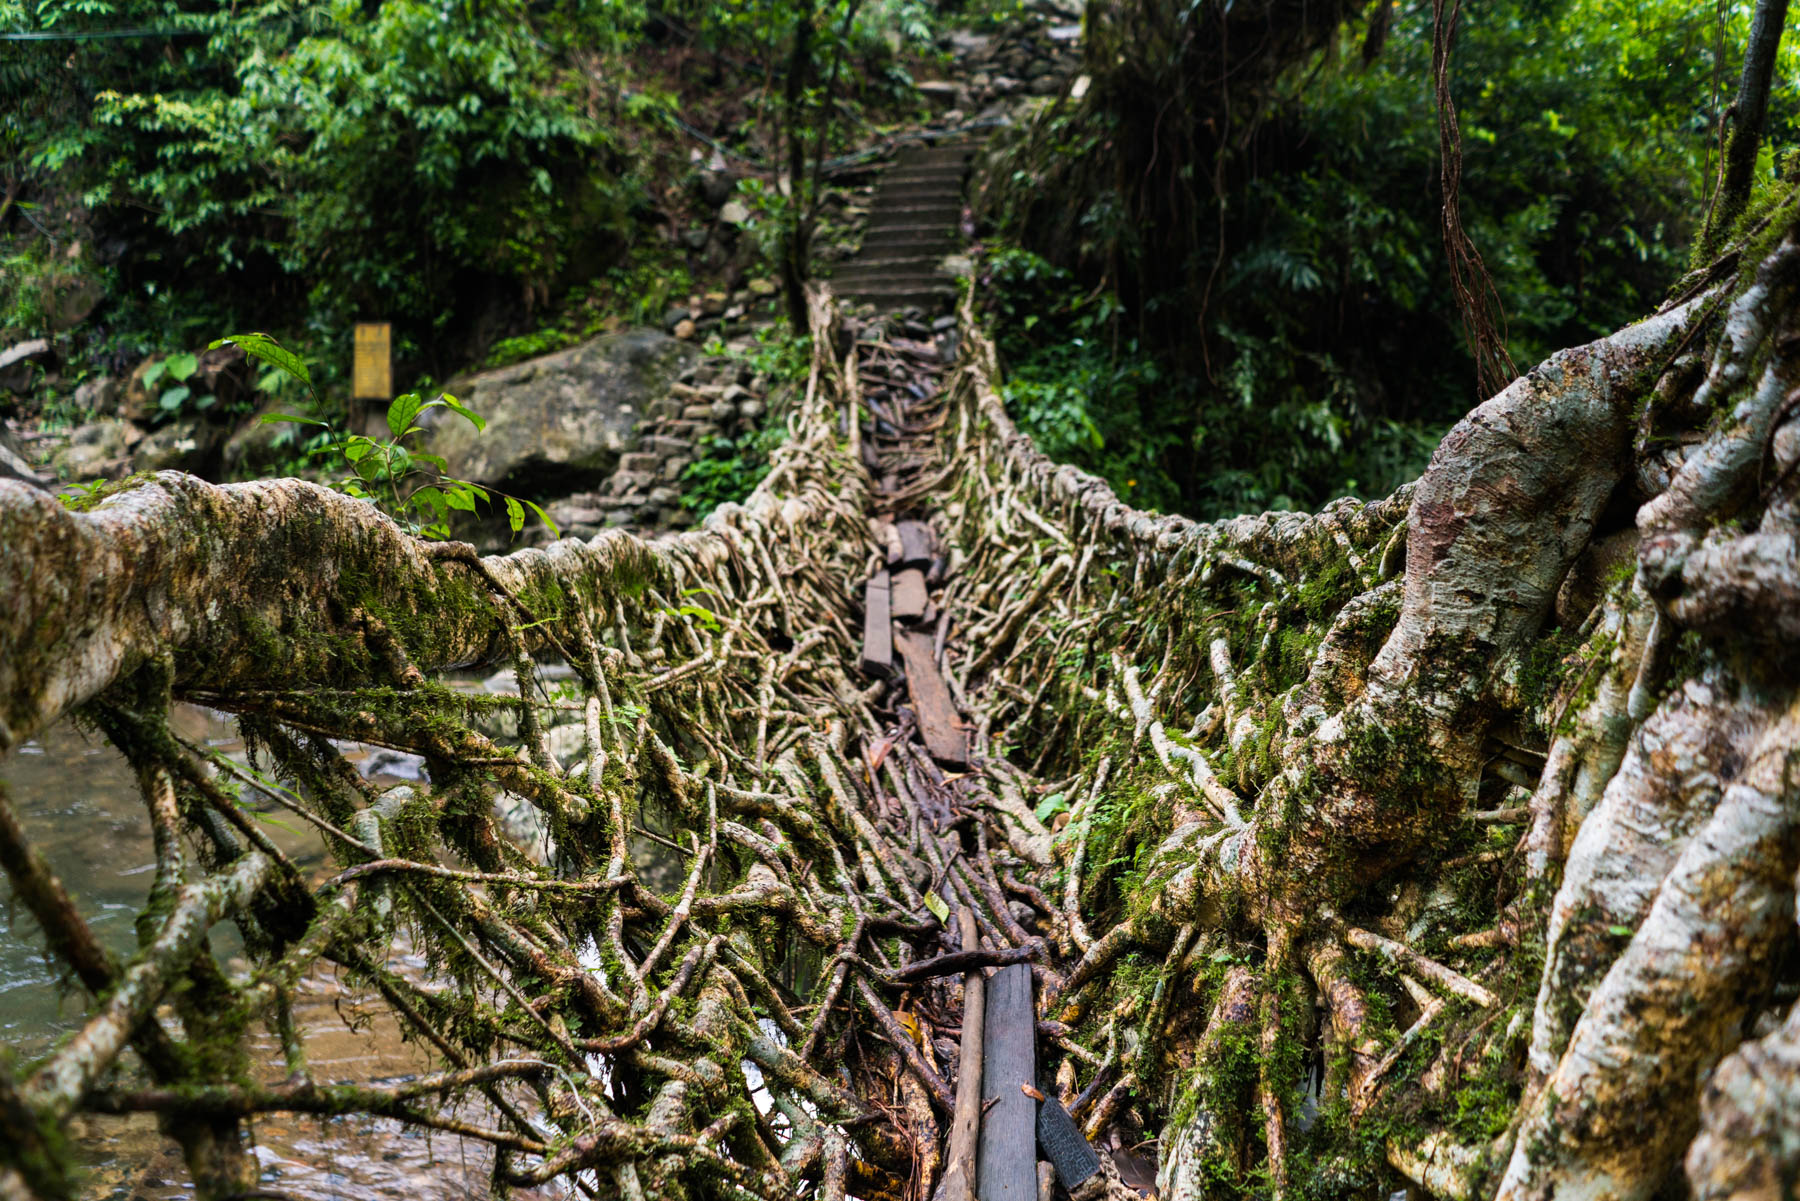 The lower level of Umshiang double-decker living root bridge